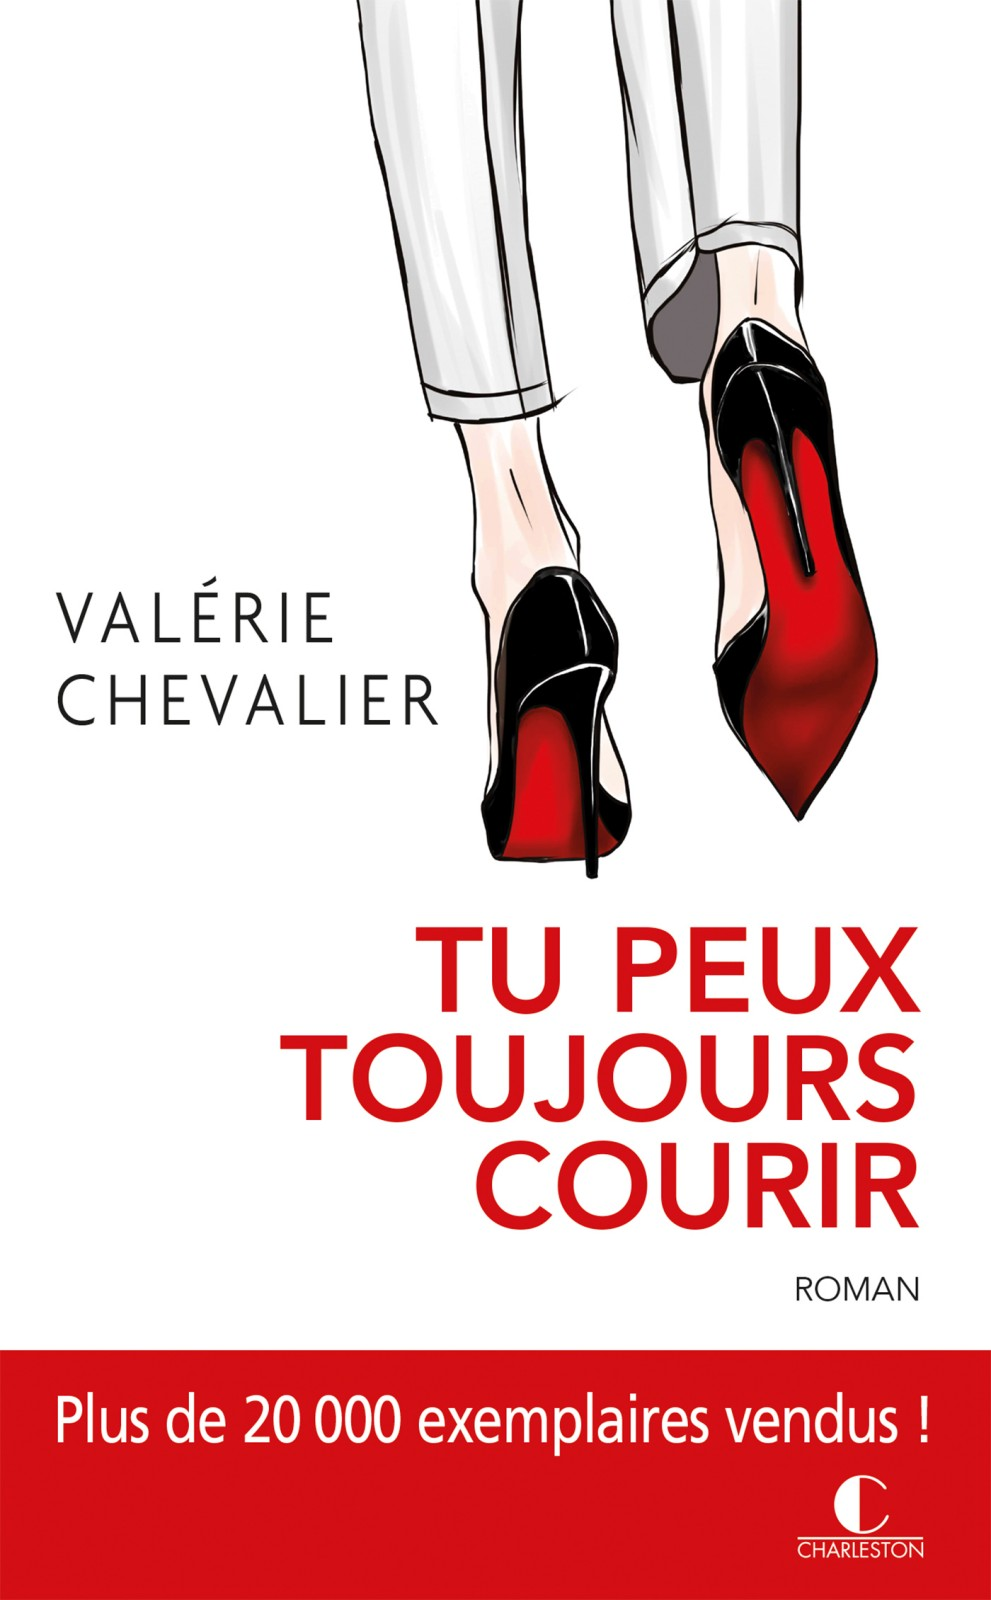 Tu peux toujours courir - Valérie Chevalier- Editions Charleston